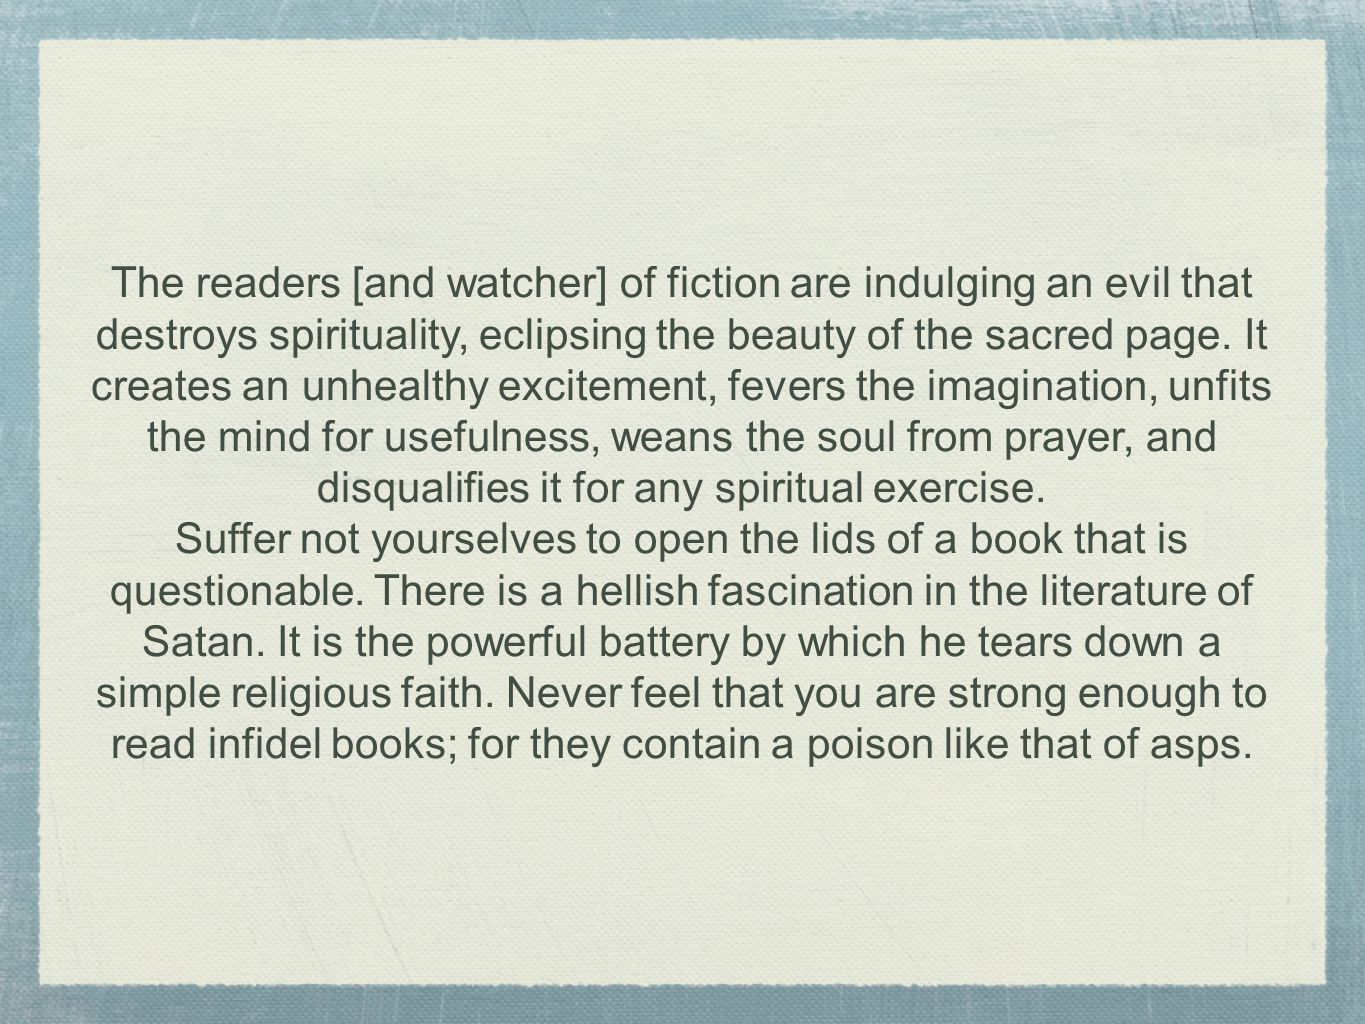 The readers [and watcher] of fiction are indulging an evil that destroys spirituality, eclipsing the beauty of the sacred page.